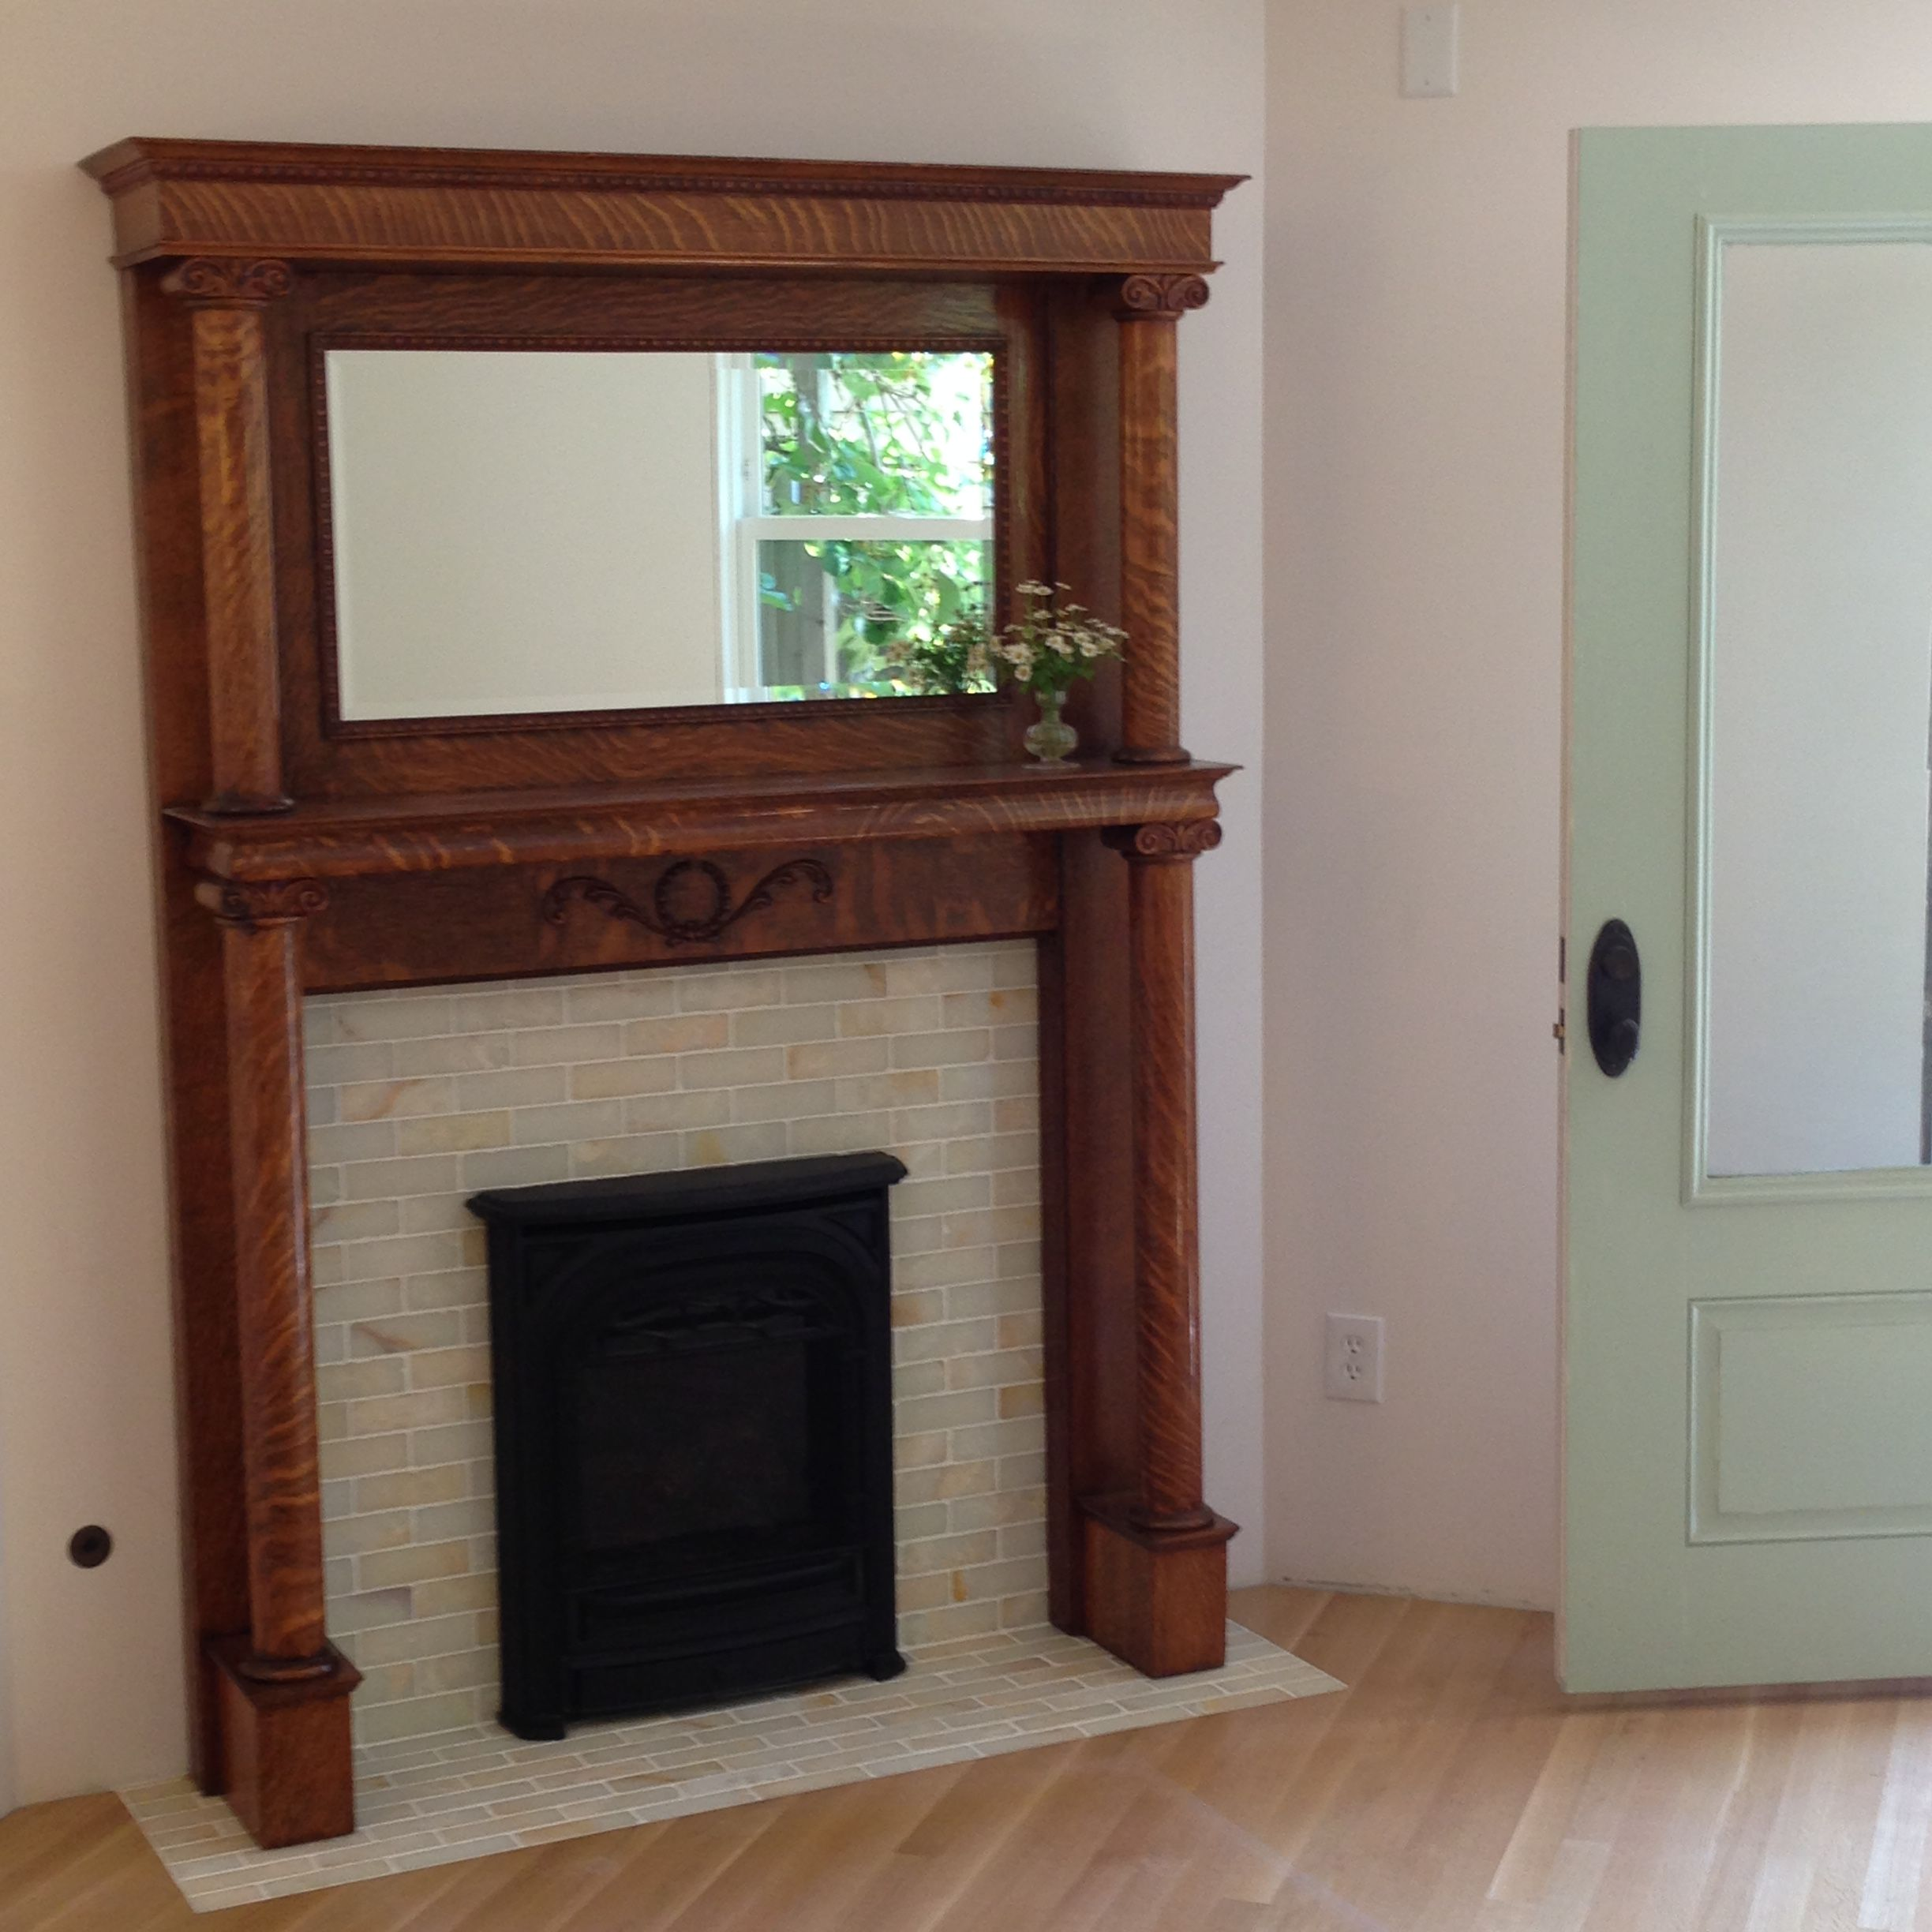 Antique Victorian oak fireplace mantle with onyx tile surround and